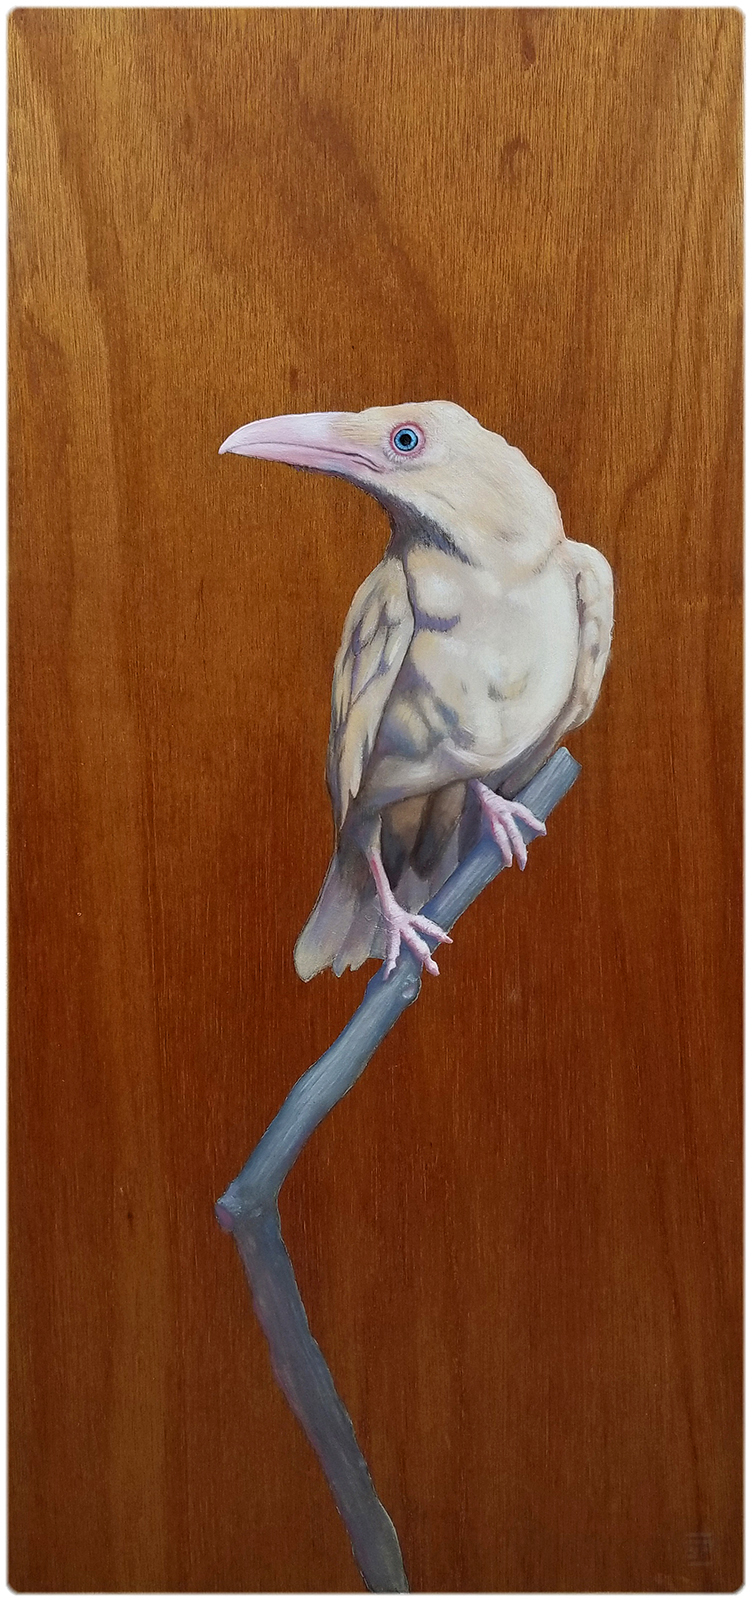 The White Raven - oil on recycled wood panel, 24.75 x 11.5 $650